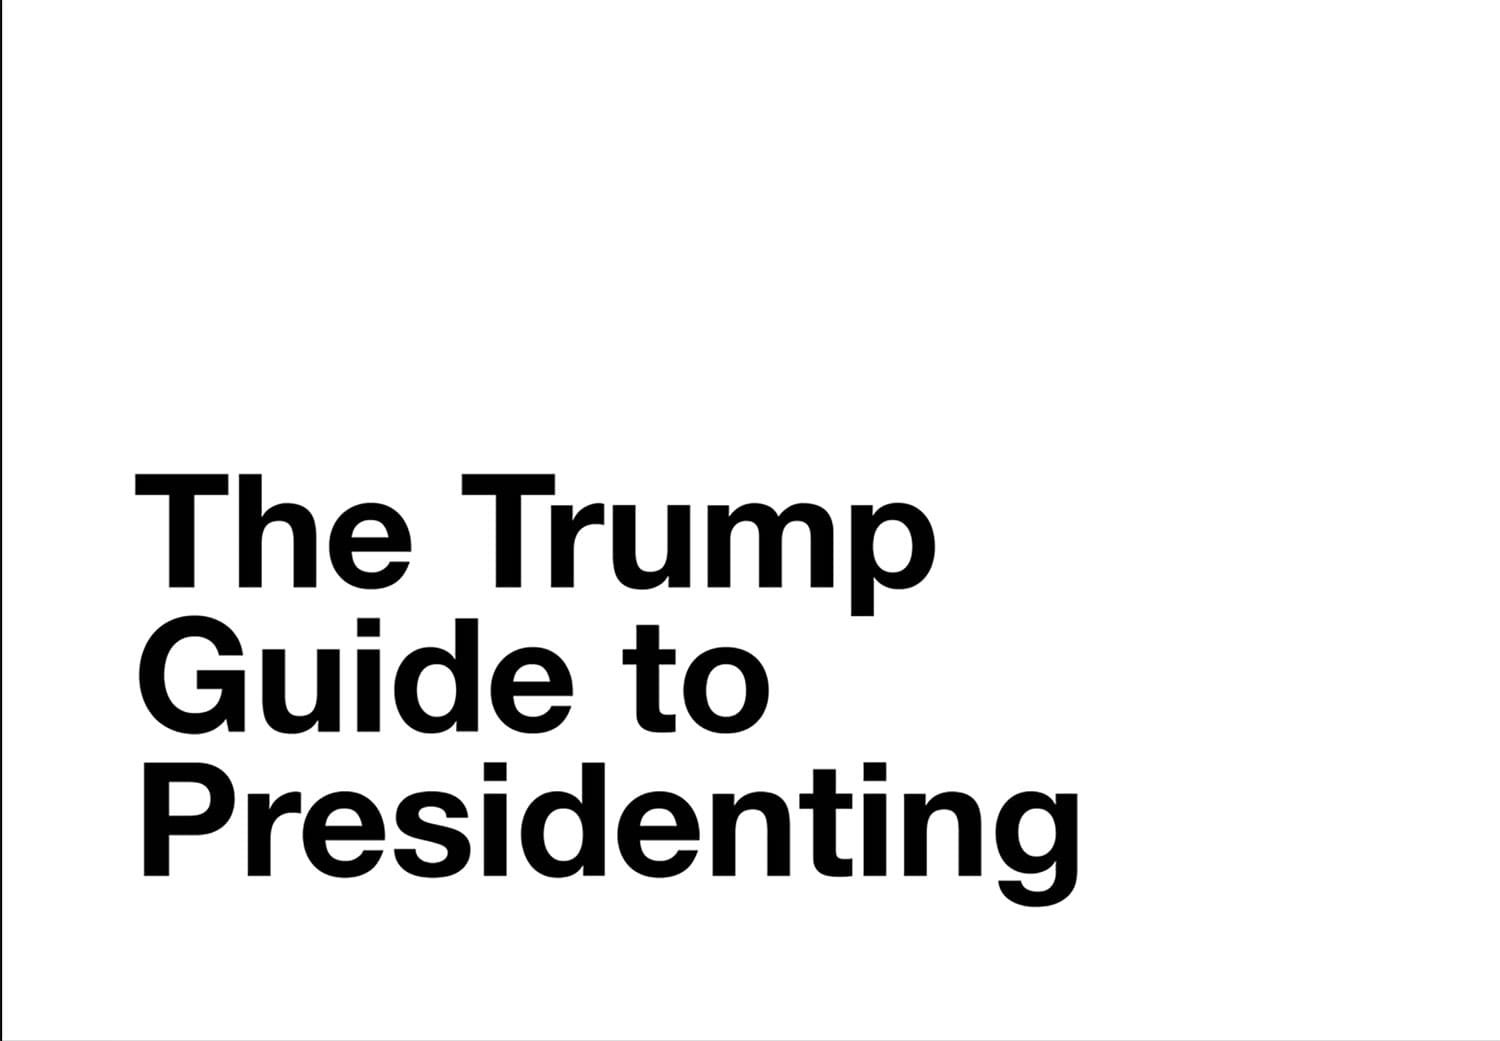 The Trump Guide to Presidenting